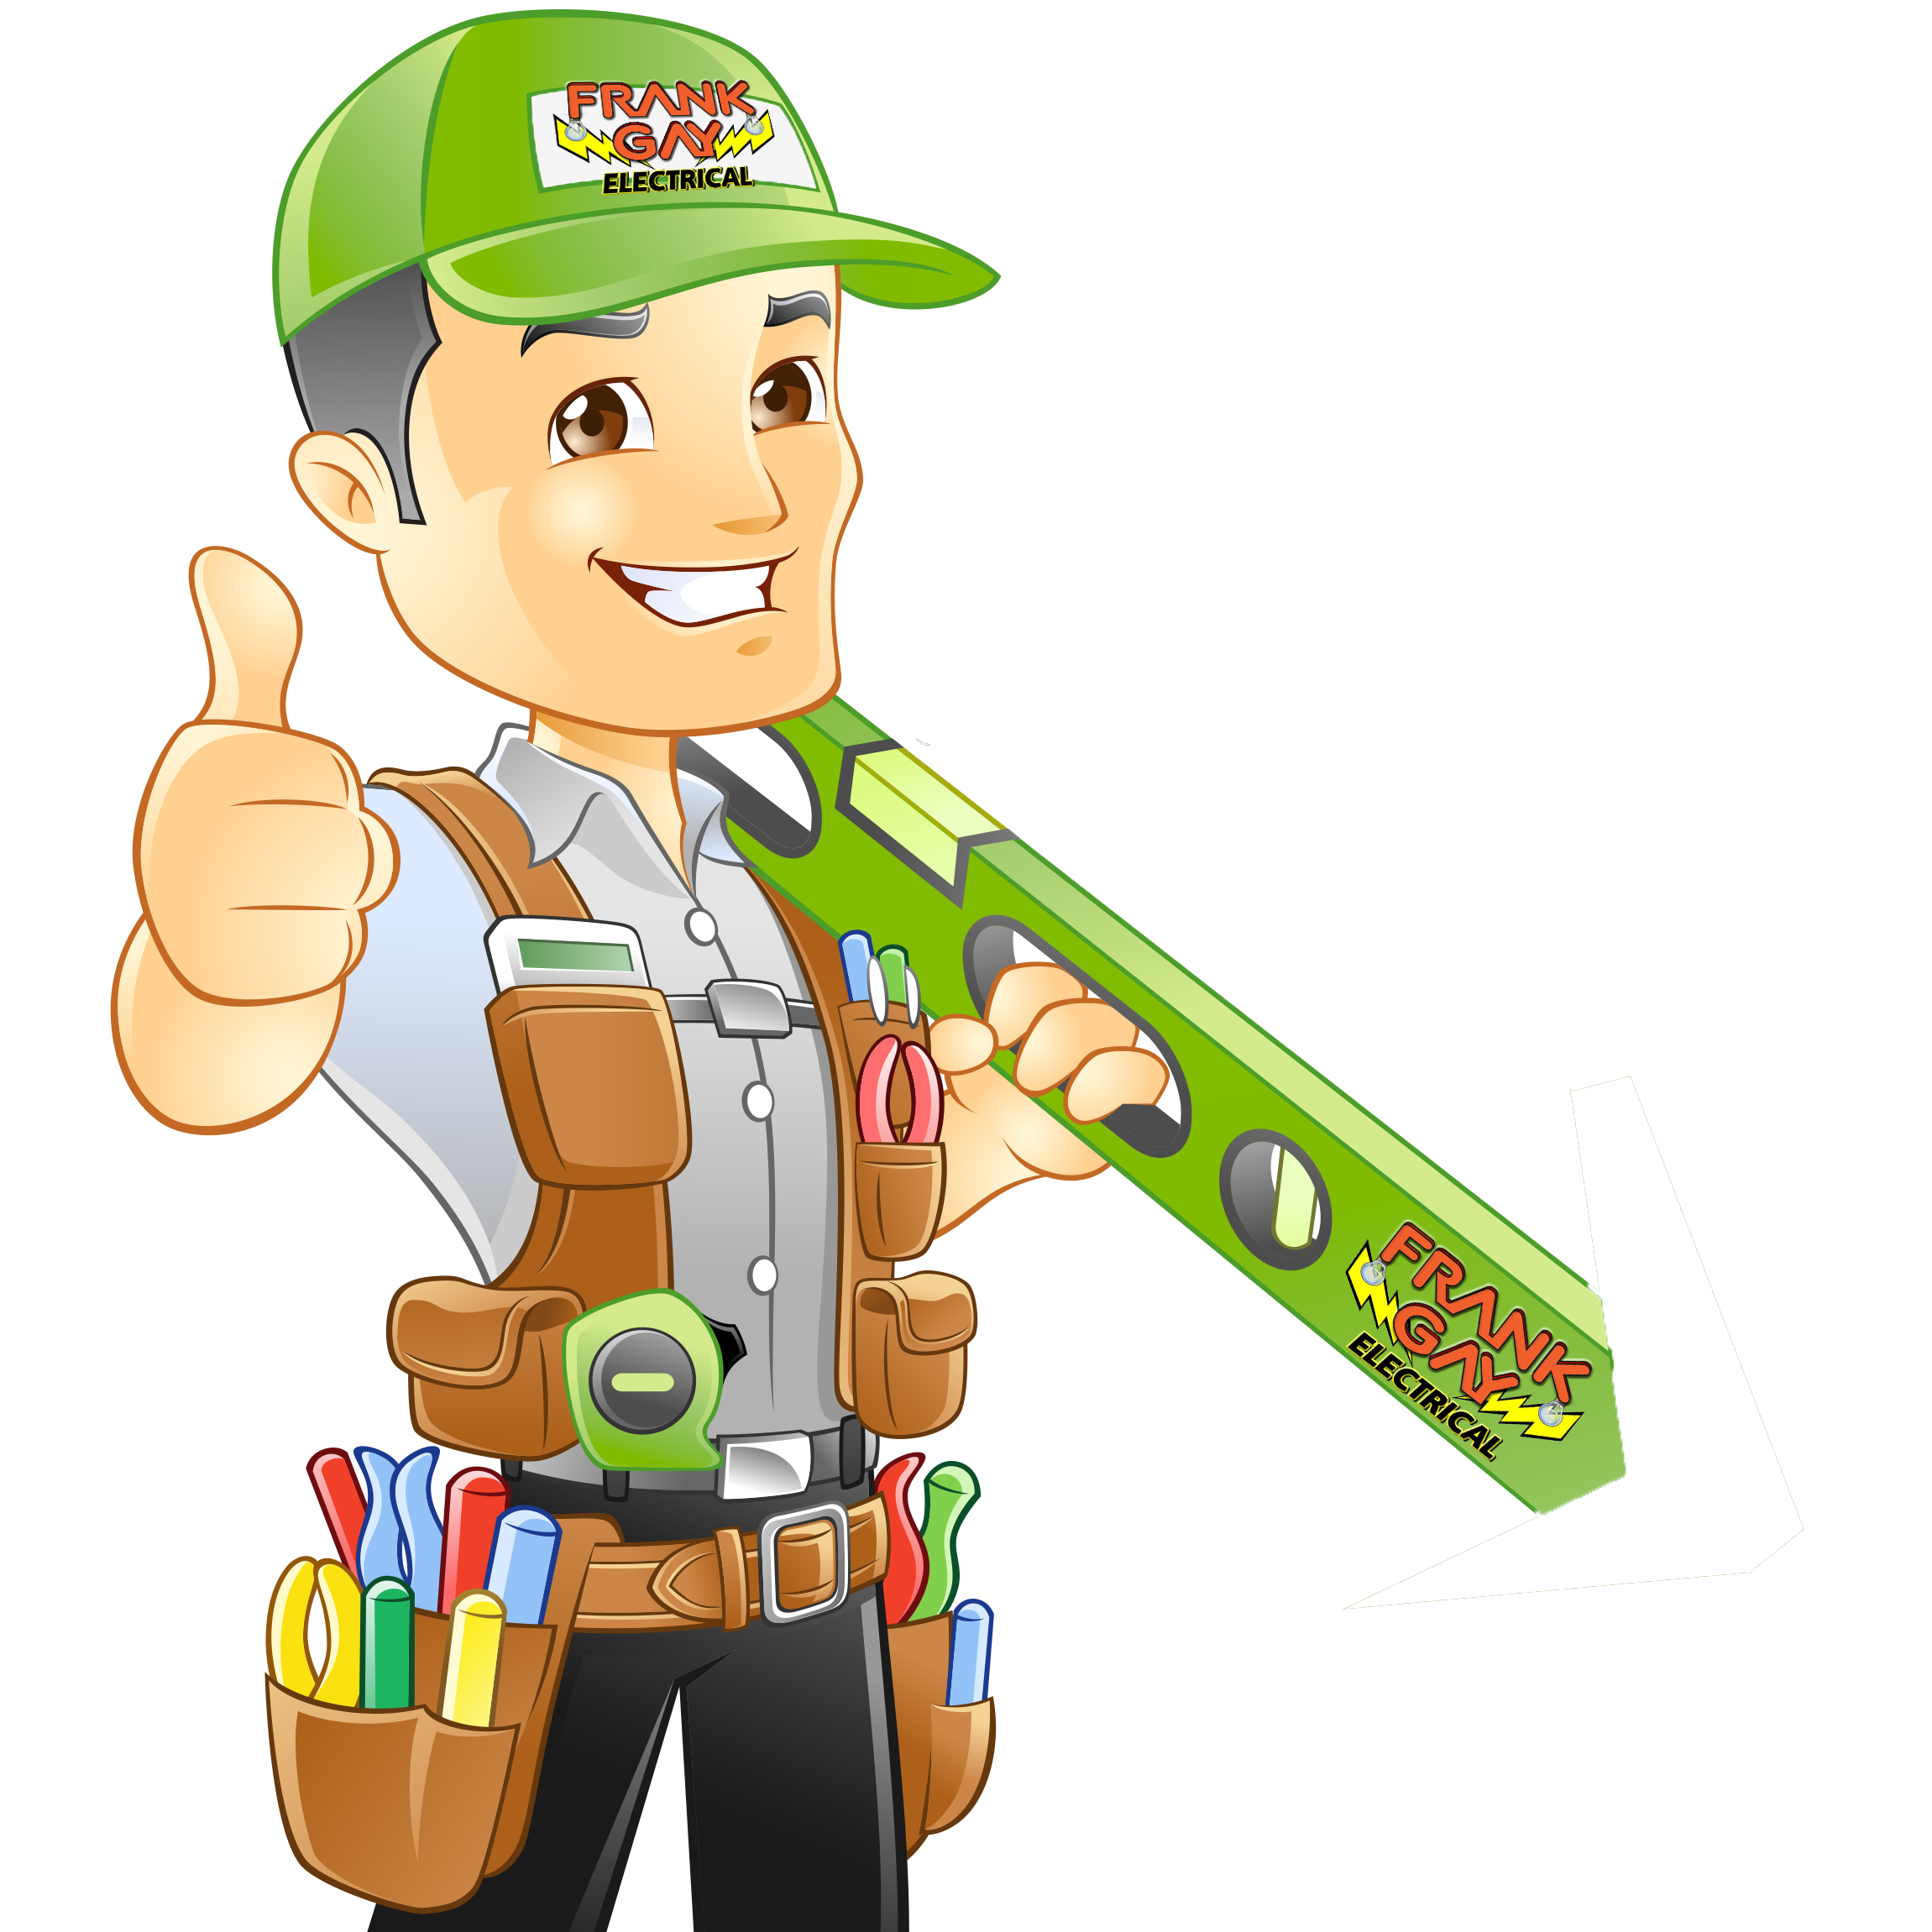 Electronics clipart electrical equipment.  collection of png